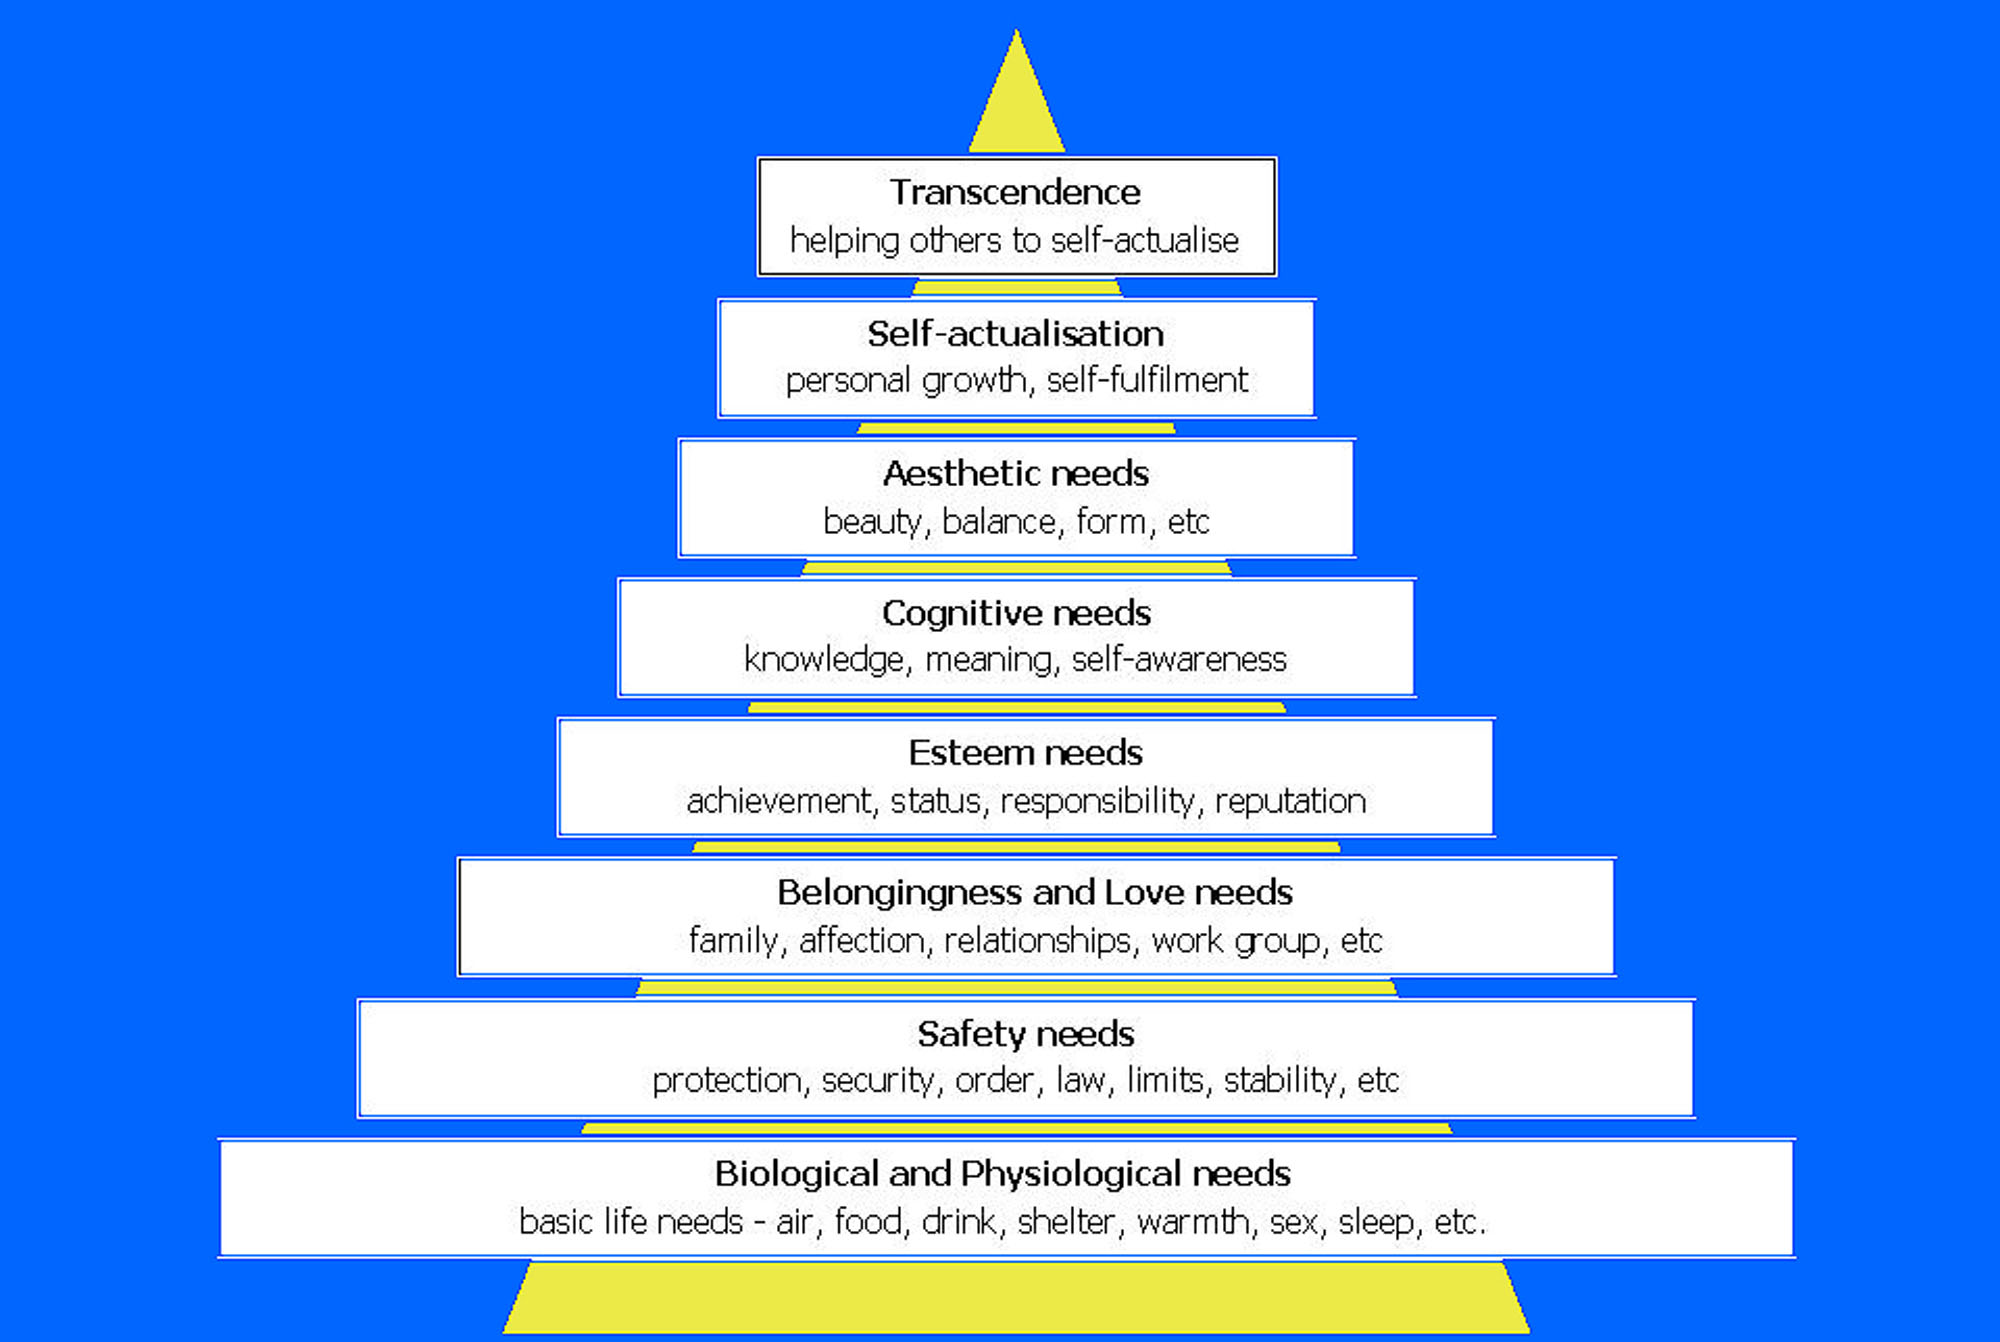 maslow s hierarchy of needs in the This wiki explores abraham h maslow's hierarchy of needs theory, clayton p alderfer's existence related growth (erg) theory, and david mcclelland's need theory.